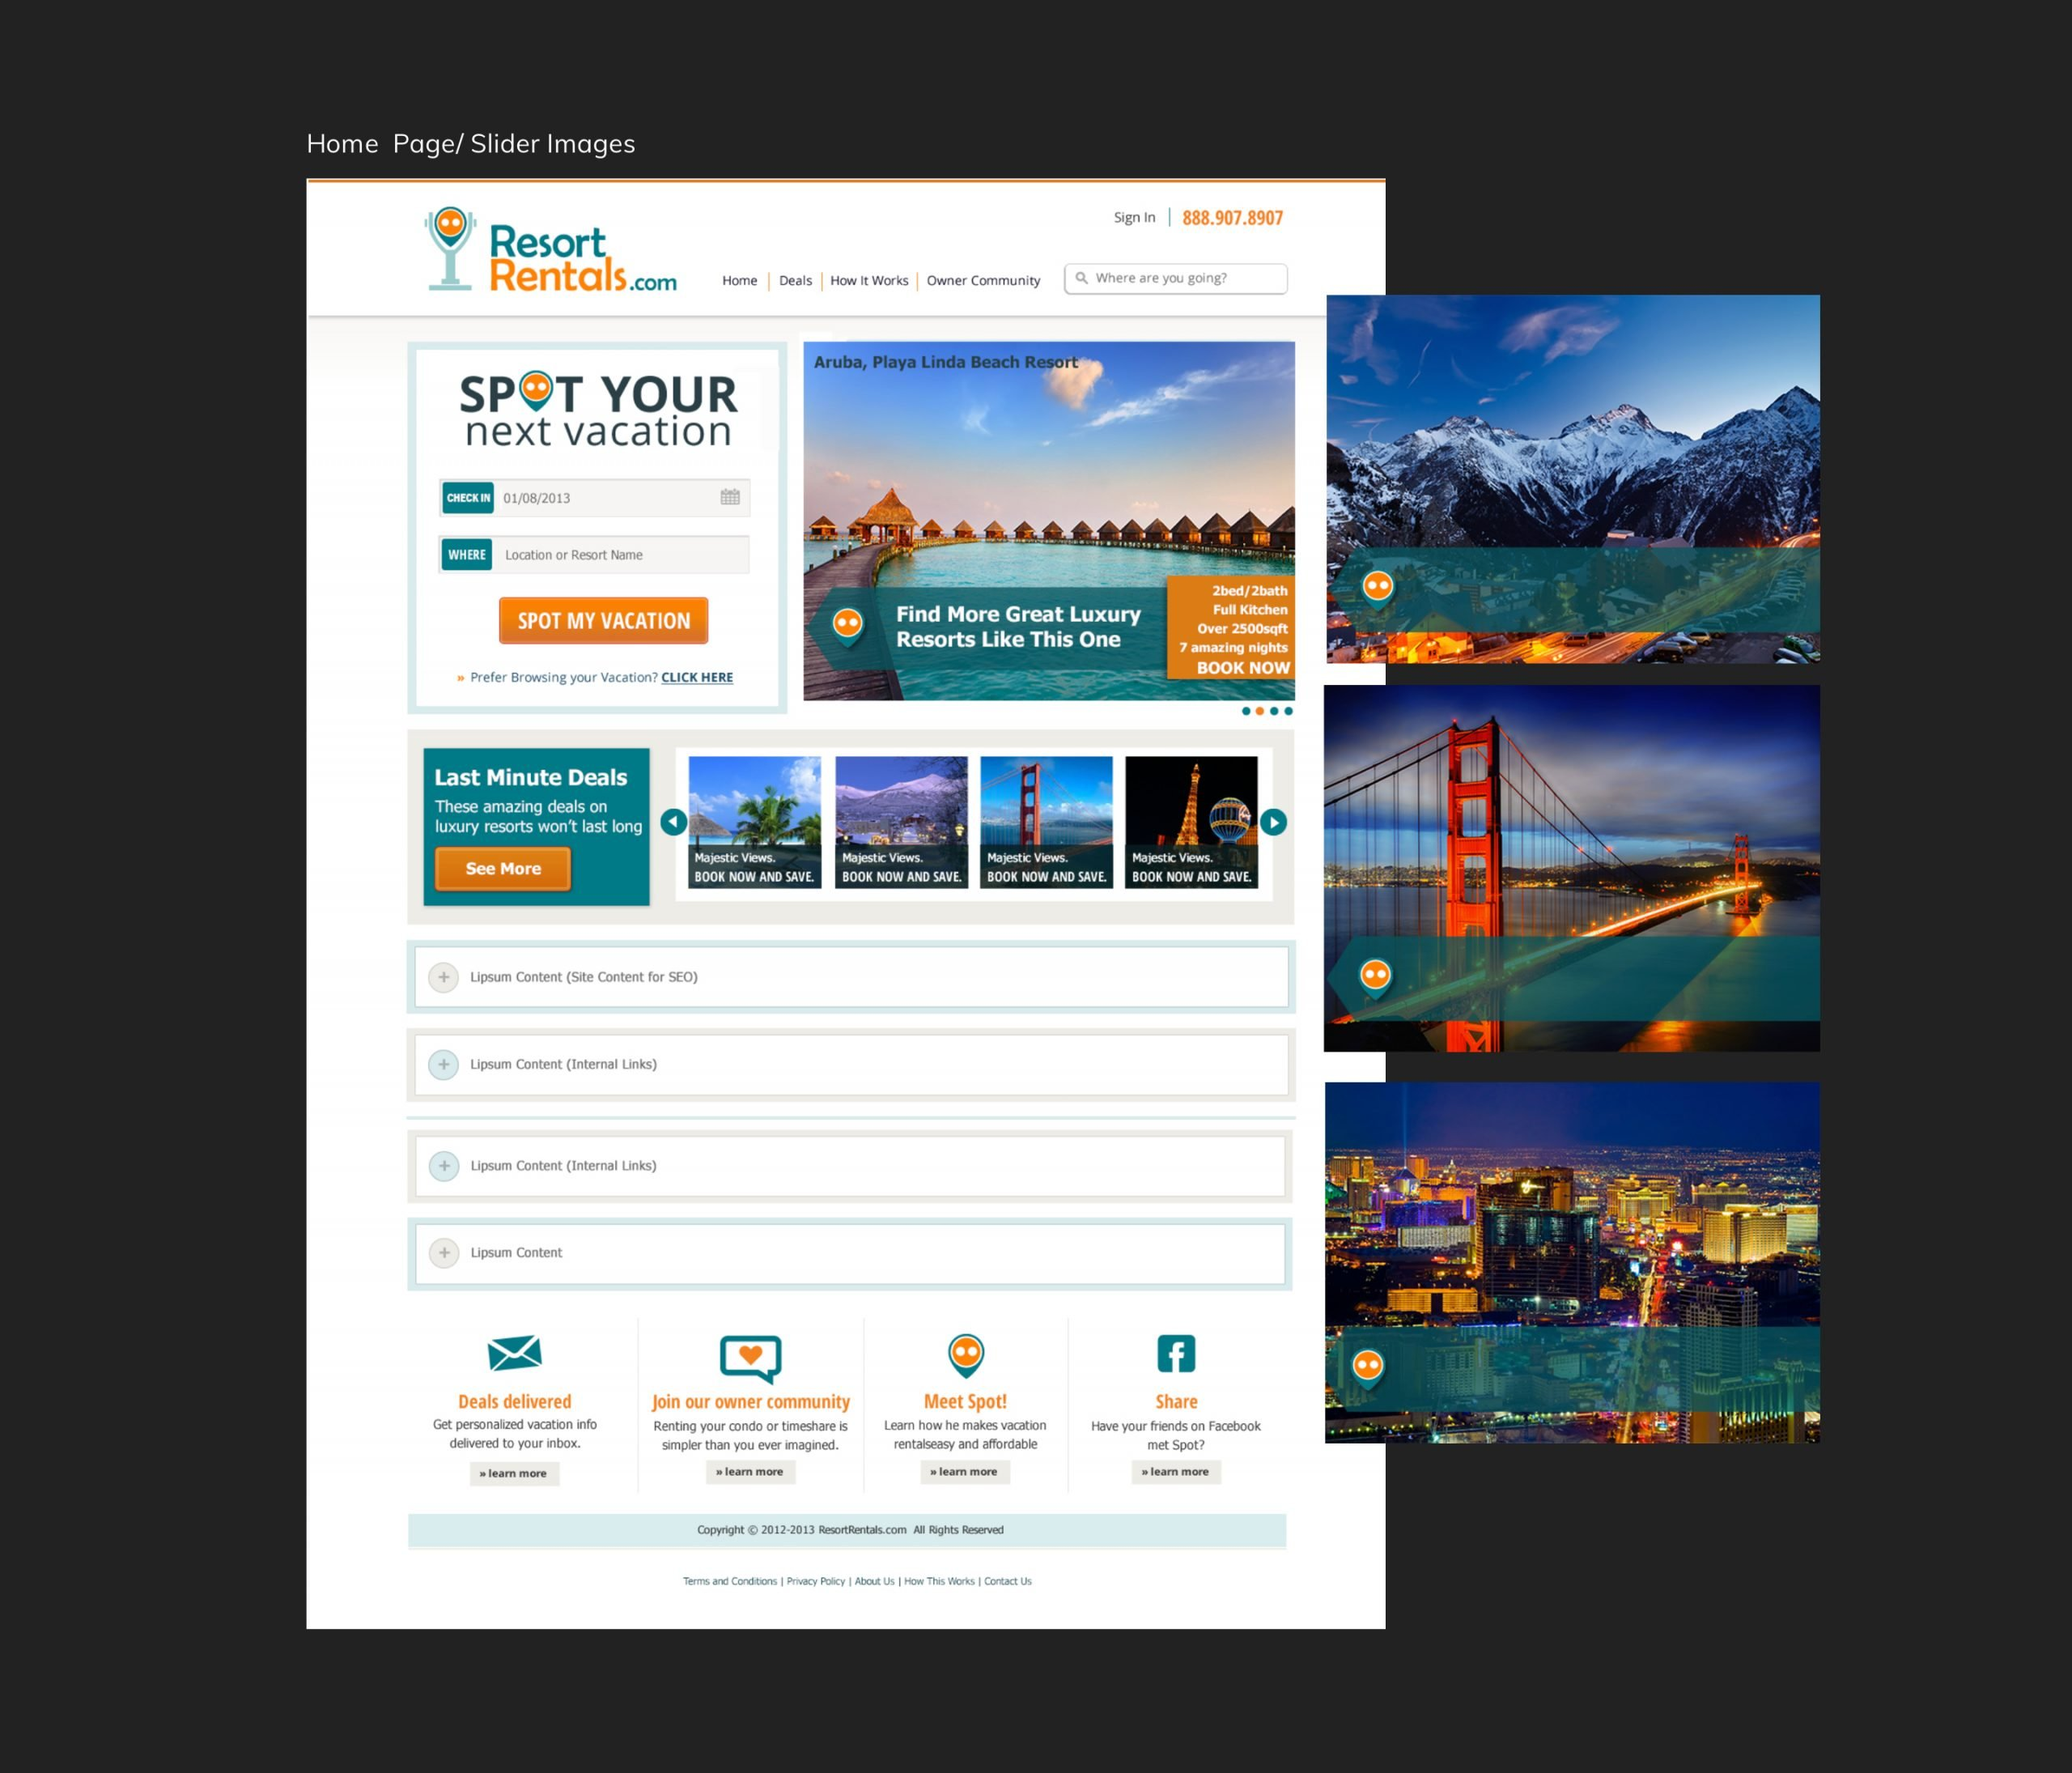 Travel Booking site Home Page